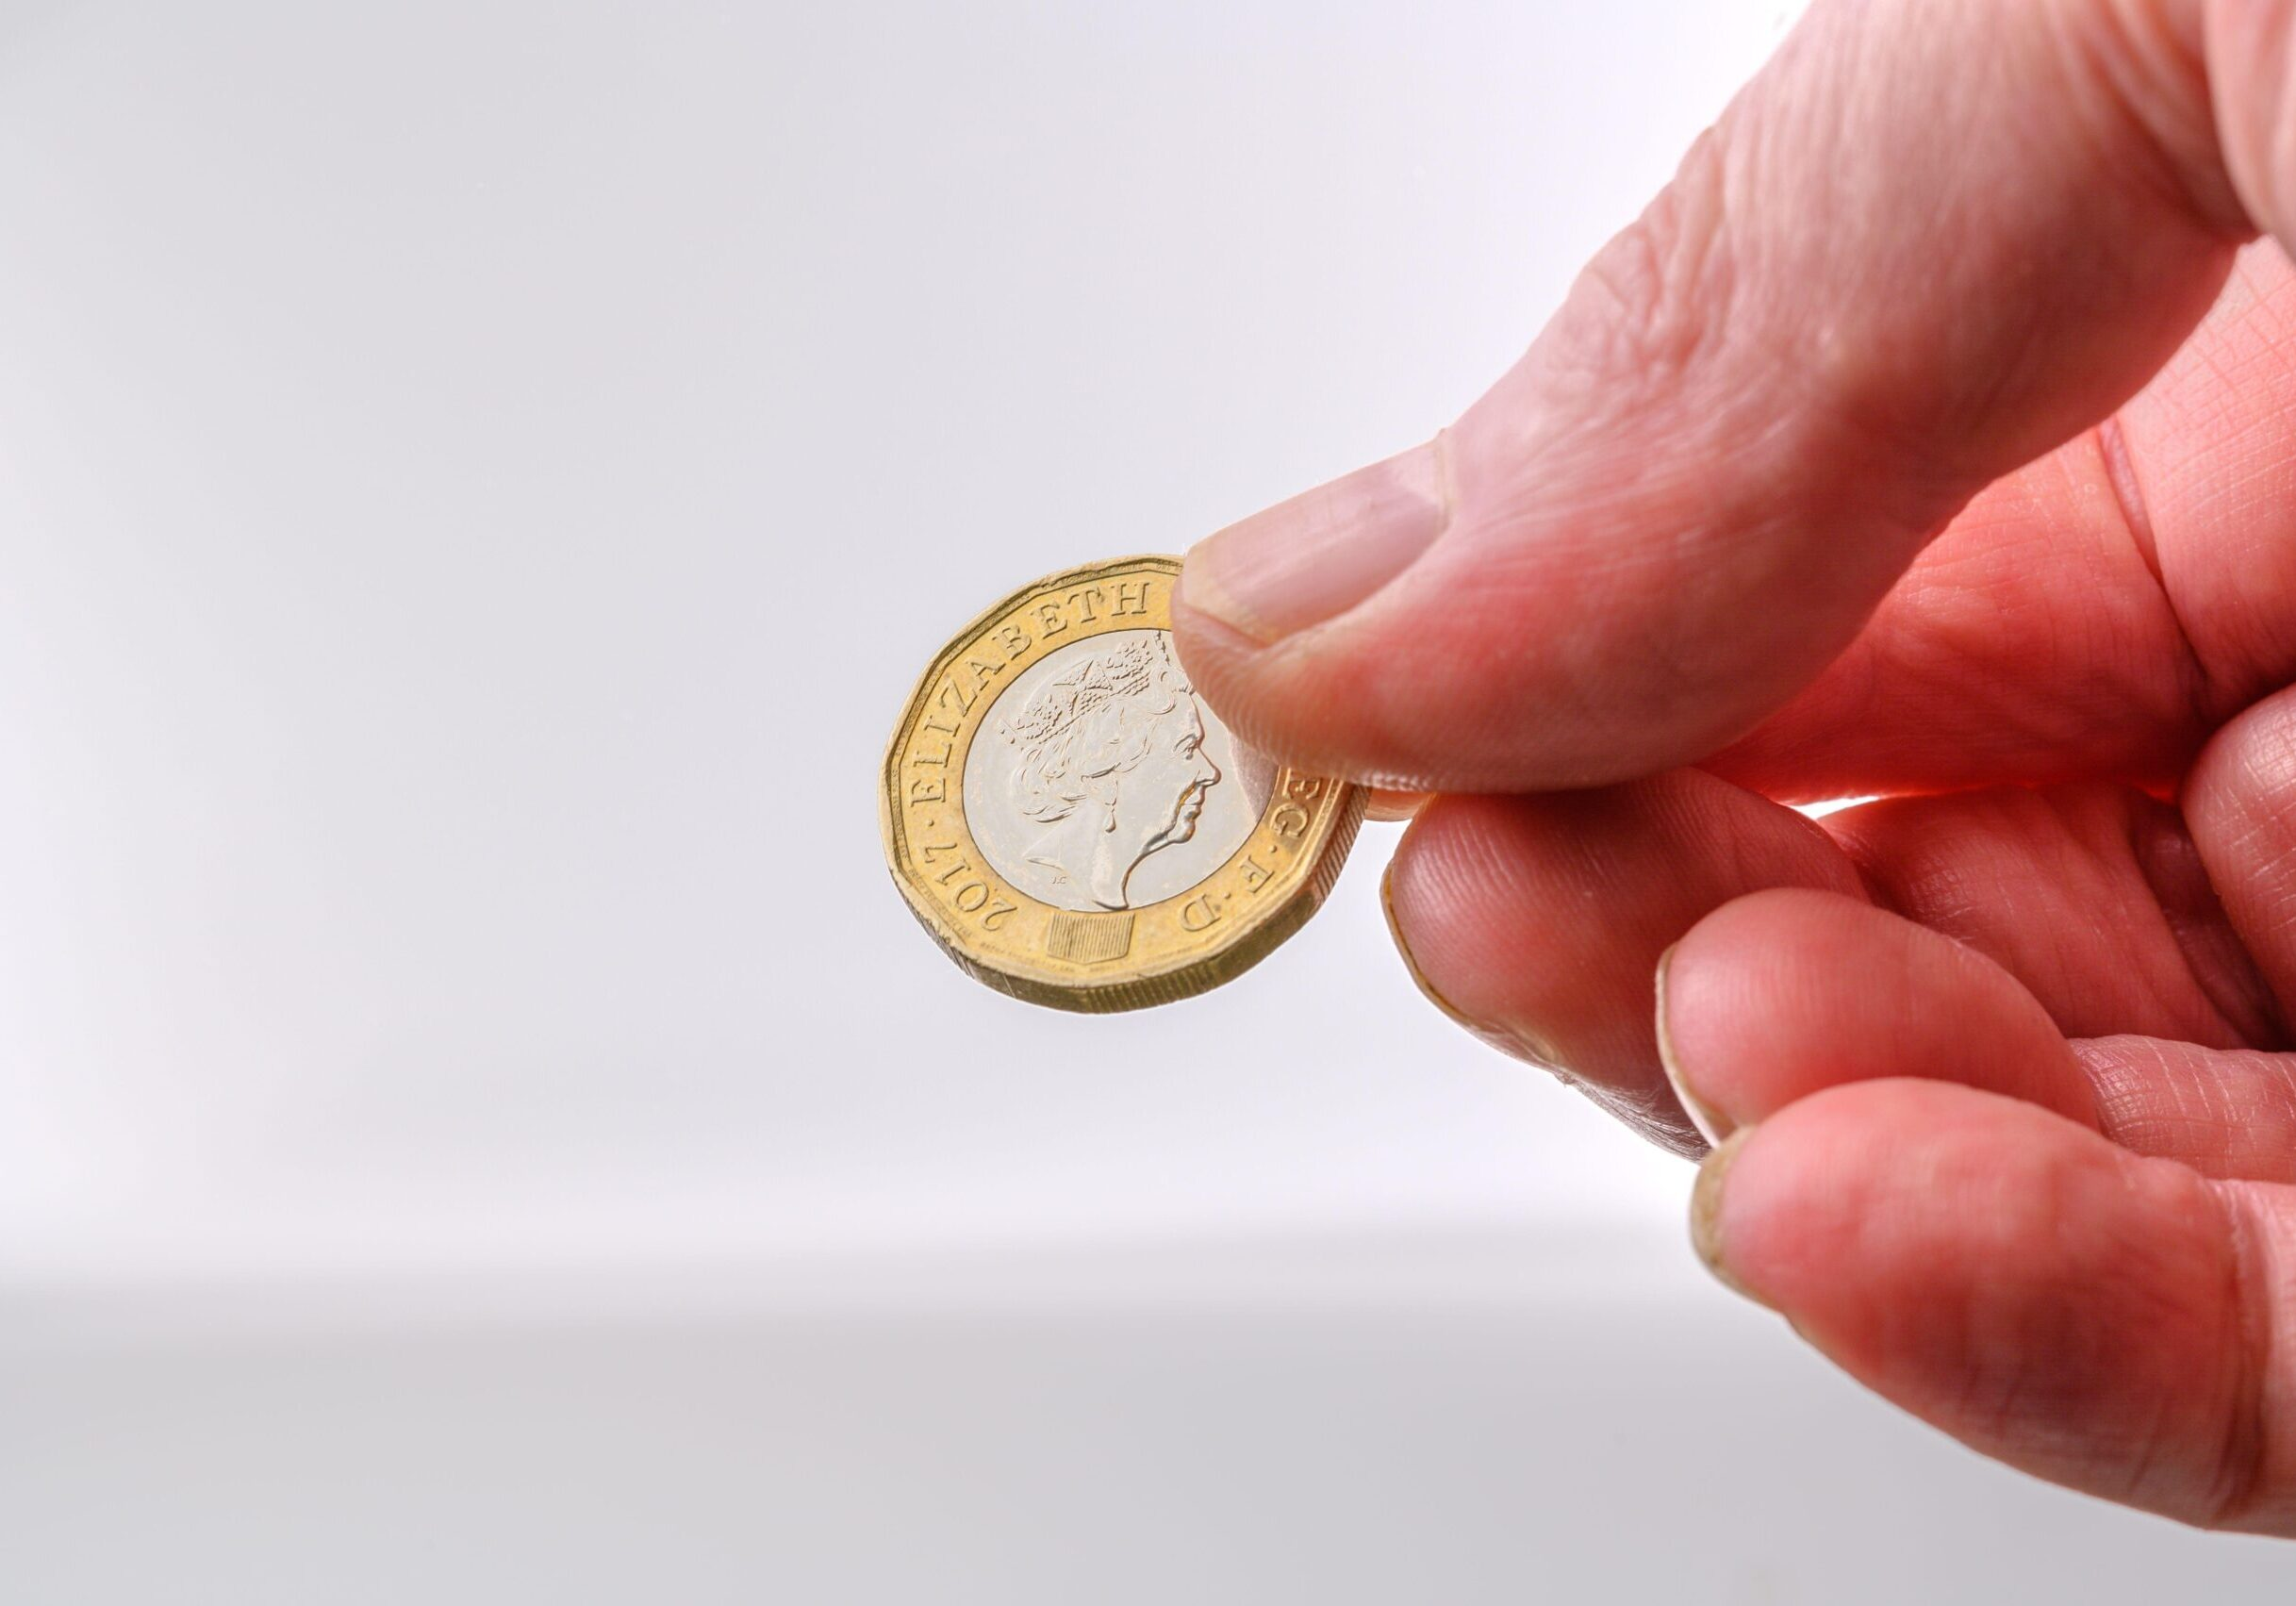 2BA8854 British Pound coin crown side in human hand for payment on white background with copy space